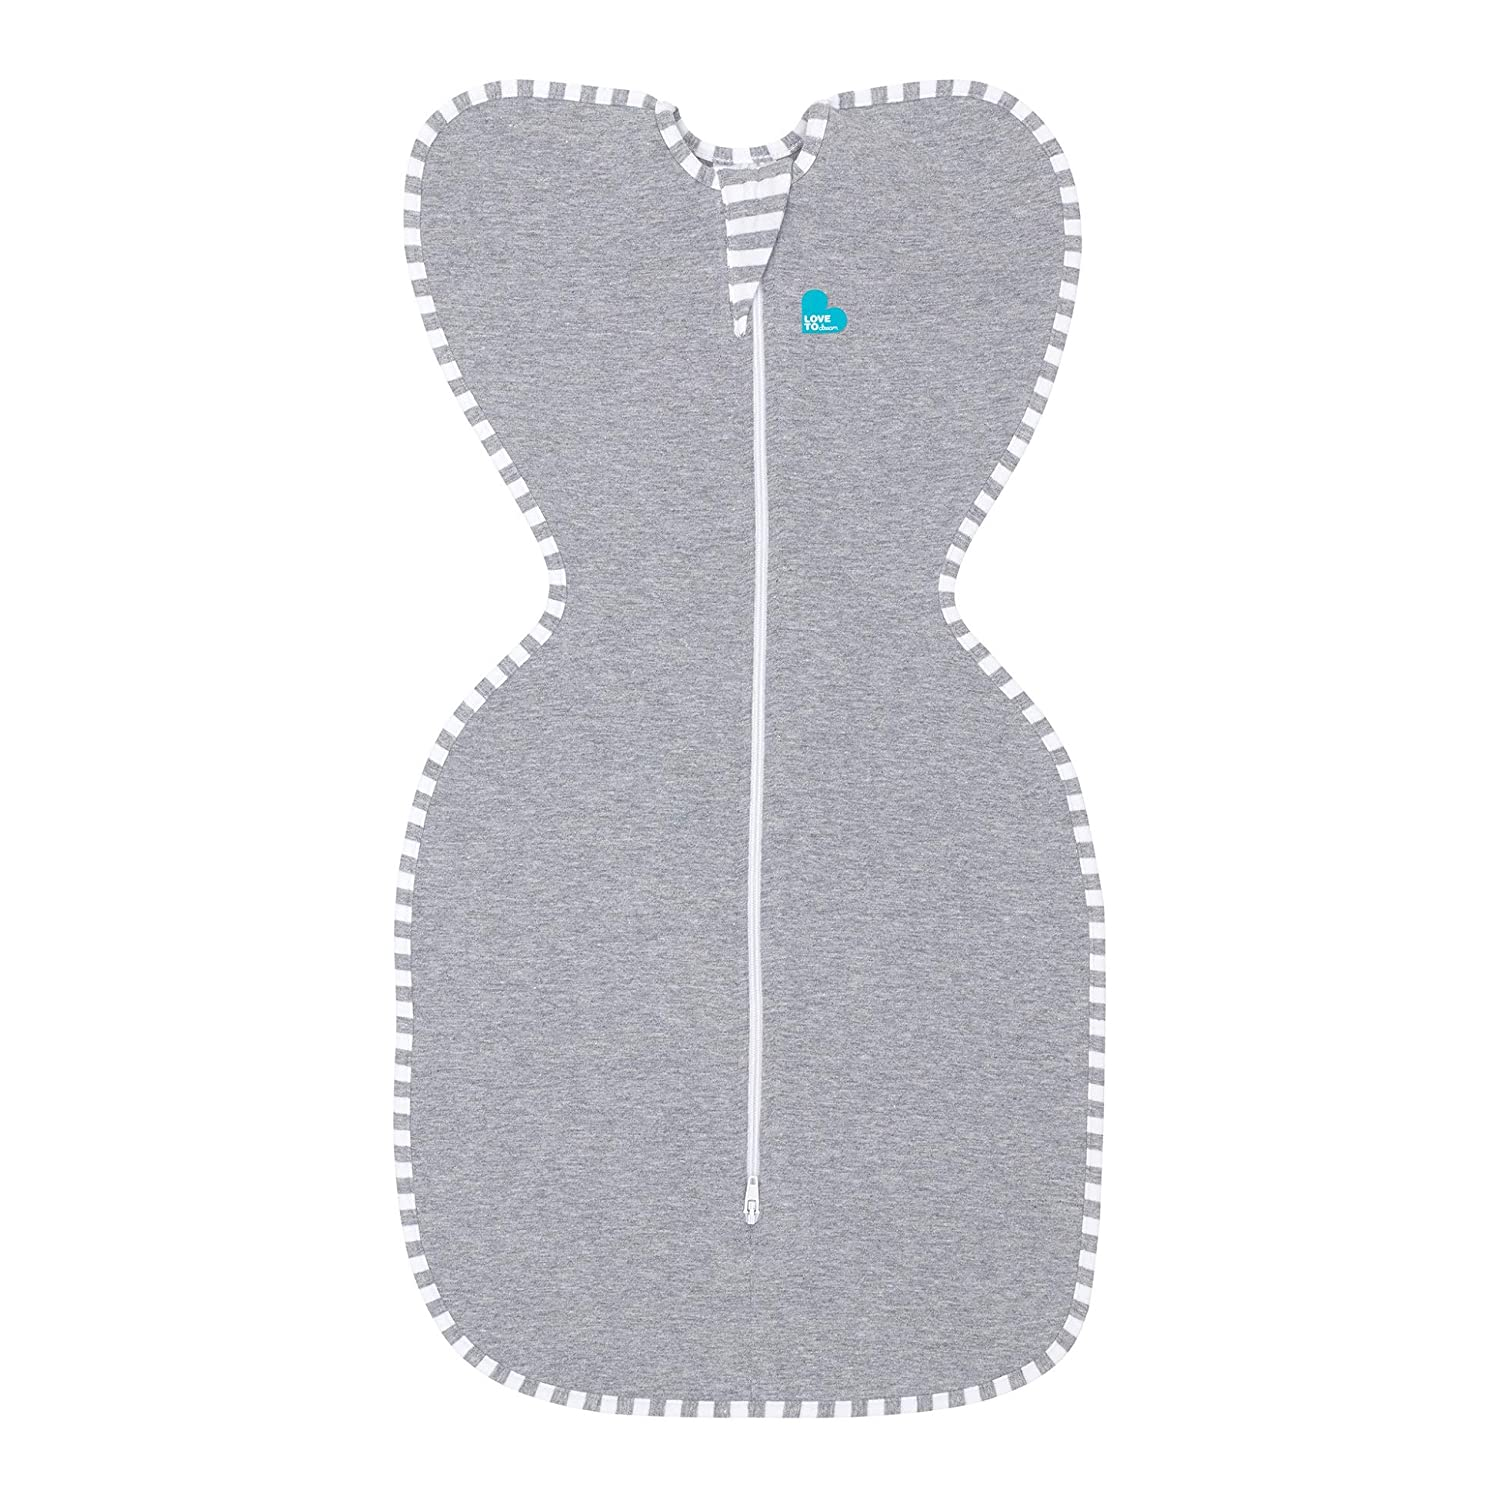 Love To Dream Swaddle UP, Gray, Small, 8-13 lbs., Dramatically Better Sleep, Allow Baby to Sleep in Their Preferred arms up Position for self-Soothing, snug fit Calms Startle Reflex: Baby